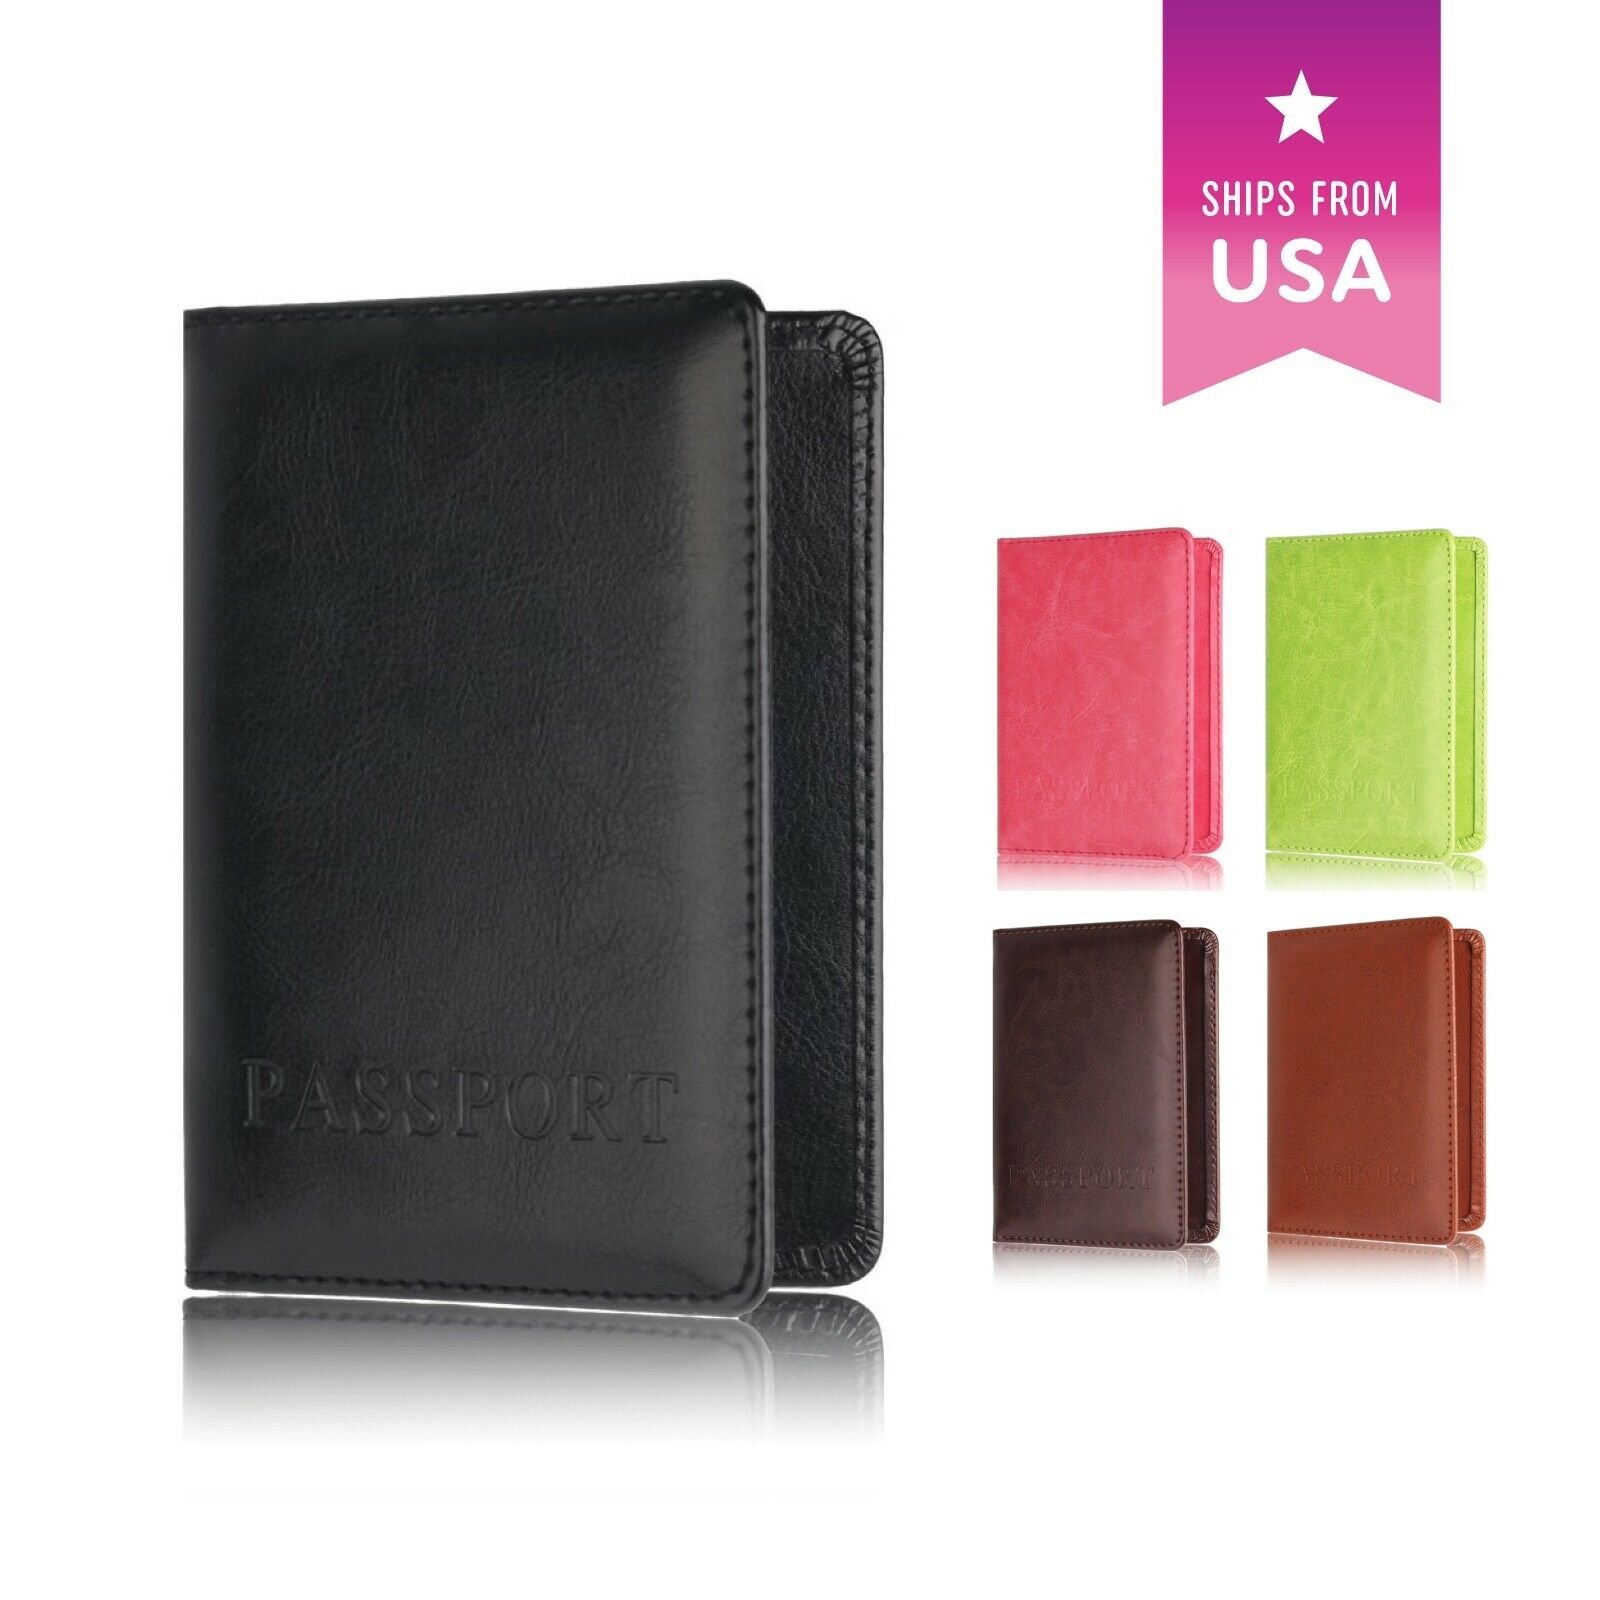 Passport Holder Travel Organizer Cover with Card Case Wallet Soft Vega...